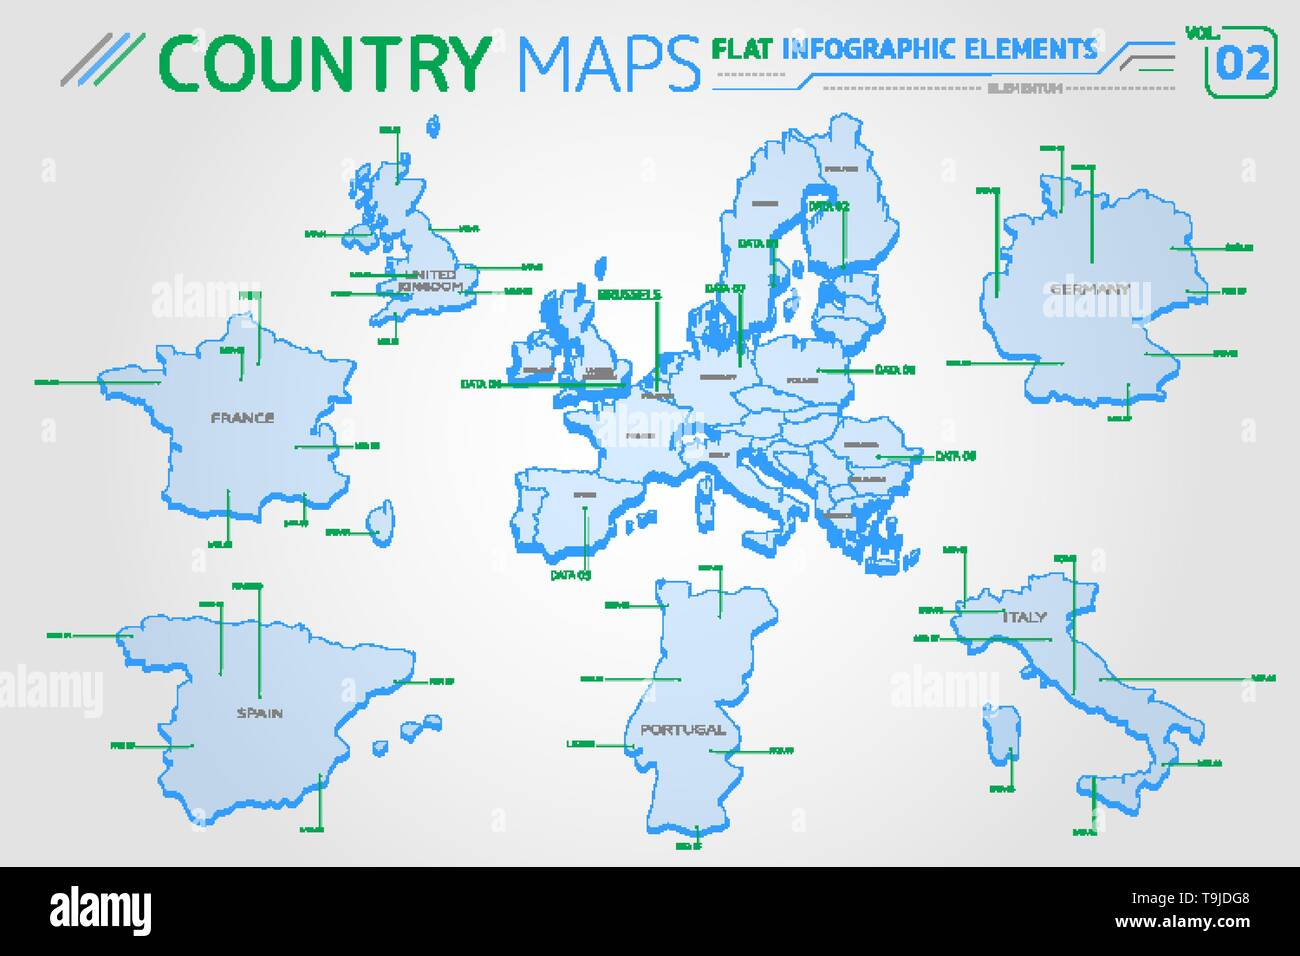 Map Of Spain Portugal And Italy.Europe United Kingdom France Spain Portugal Italy And Germany